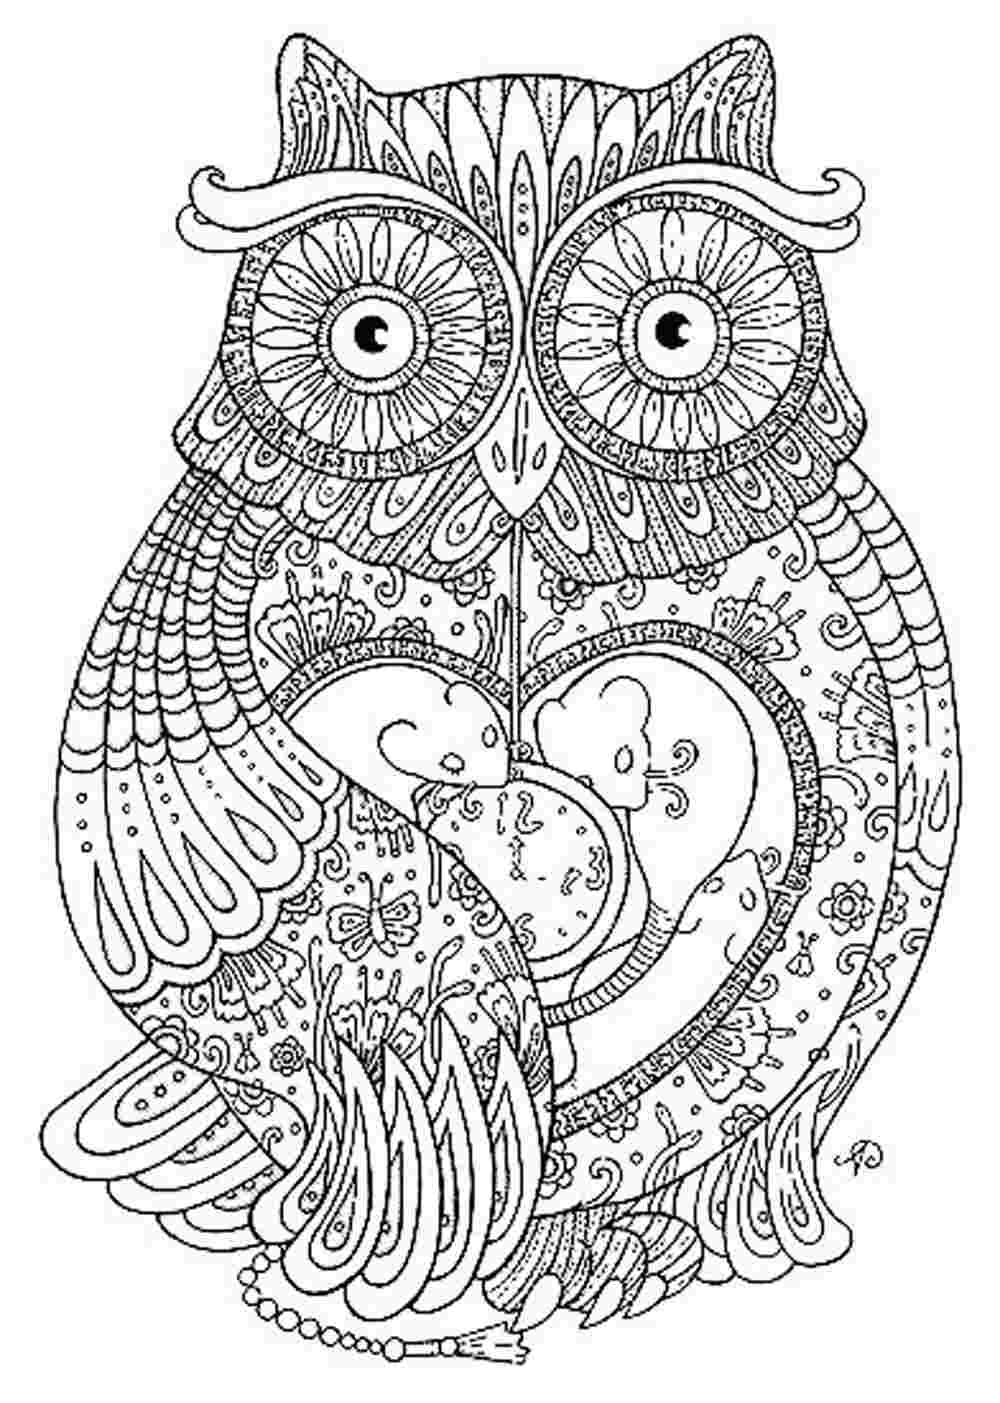 coloring pages online for adults adult coloring page coloring home adults coloring for pages online